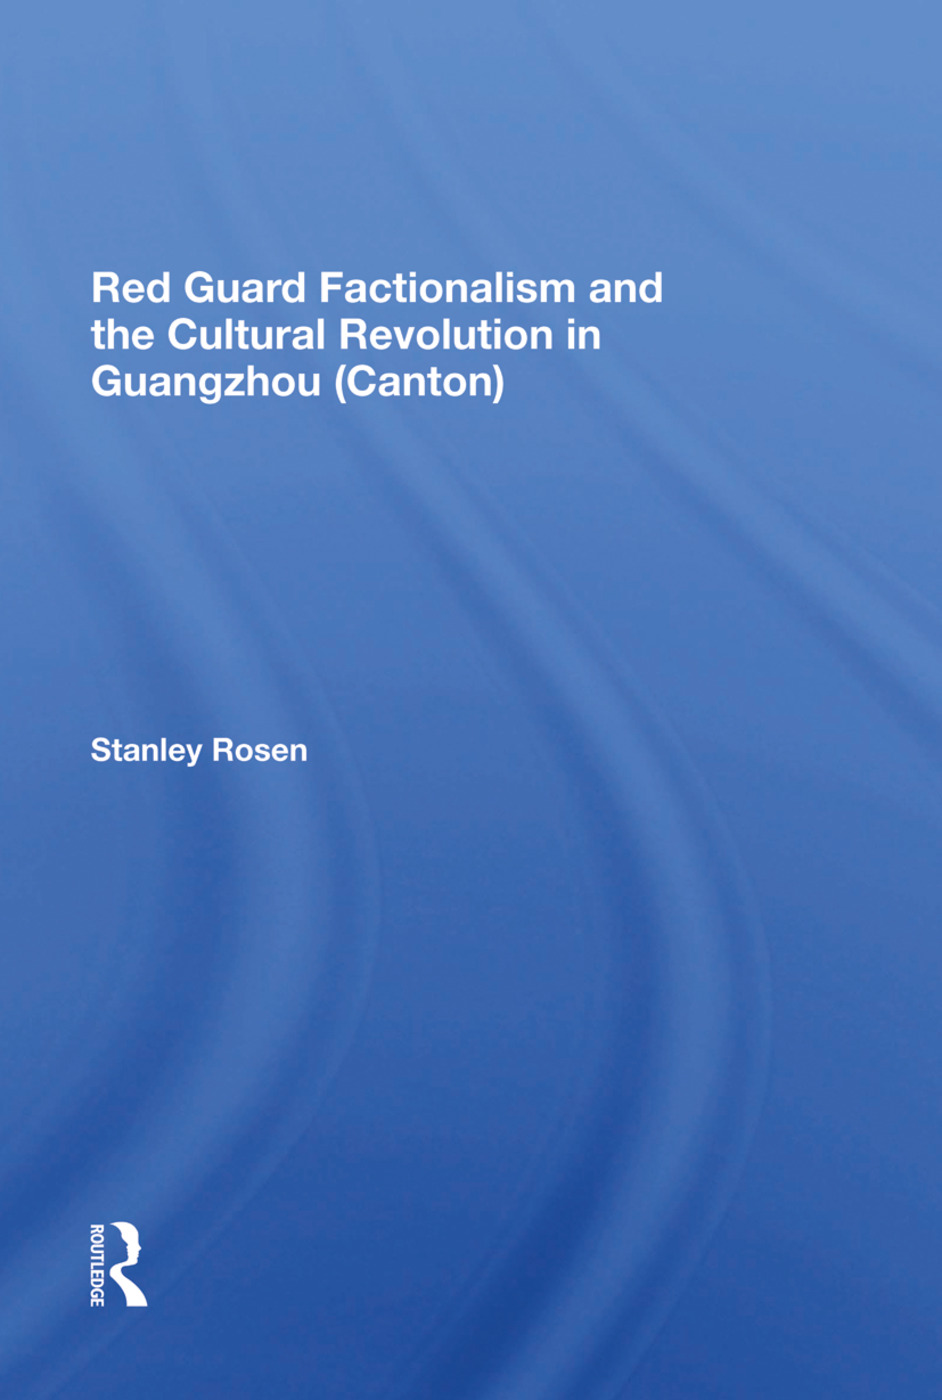 Red Guard Factionalism And The Cultural Revolution In Guangzhou (canton): 1st Edition (Hardback) book cover